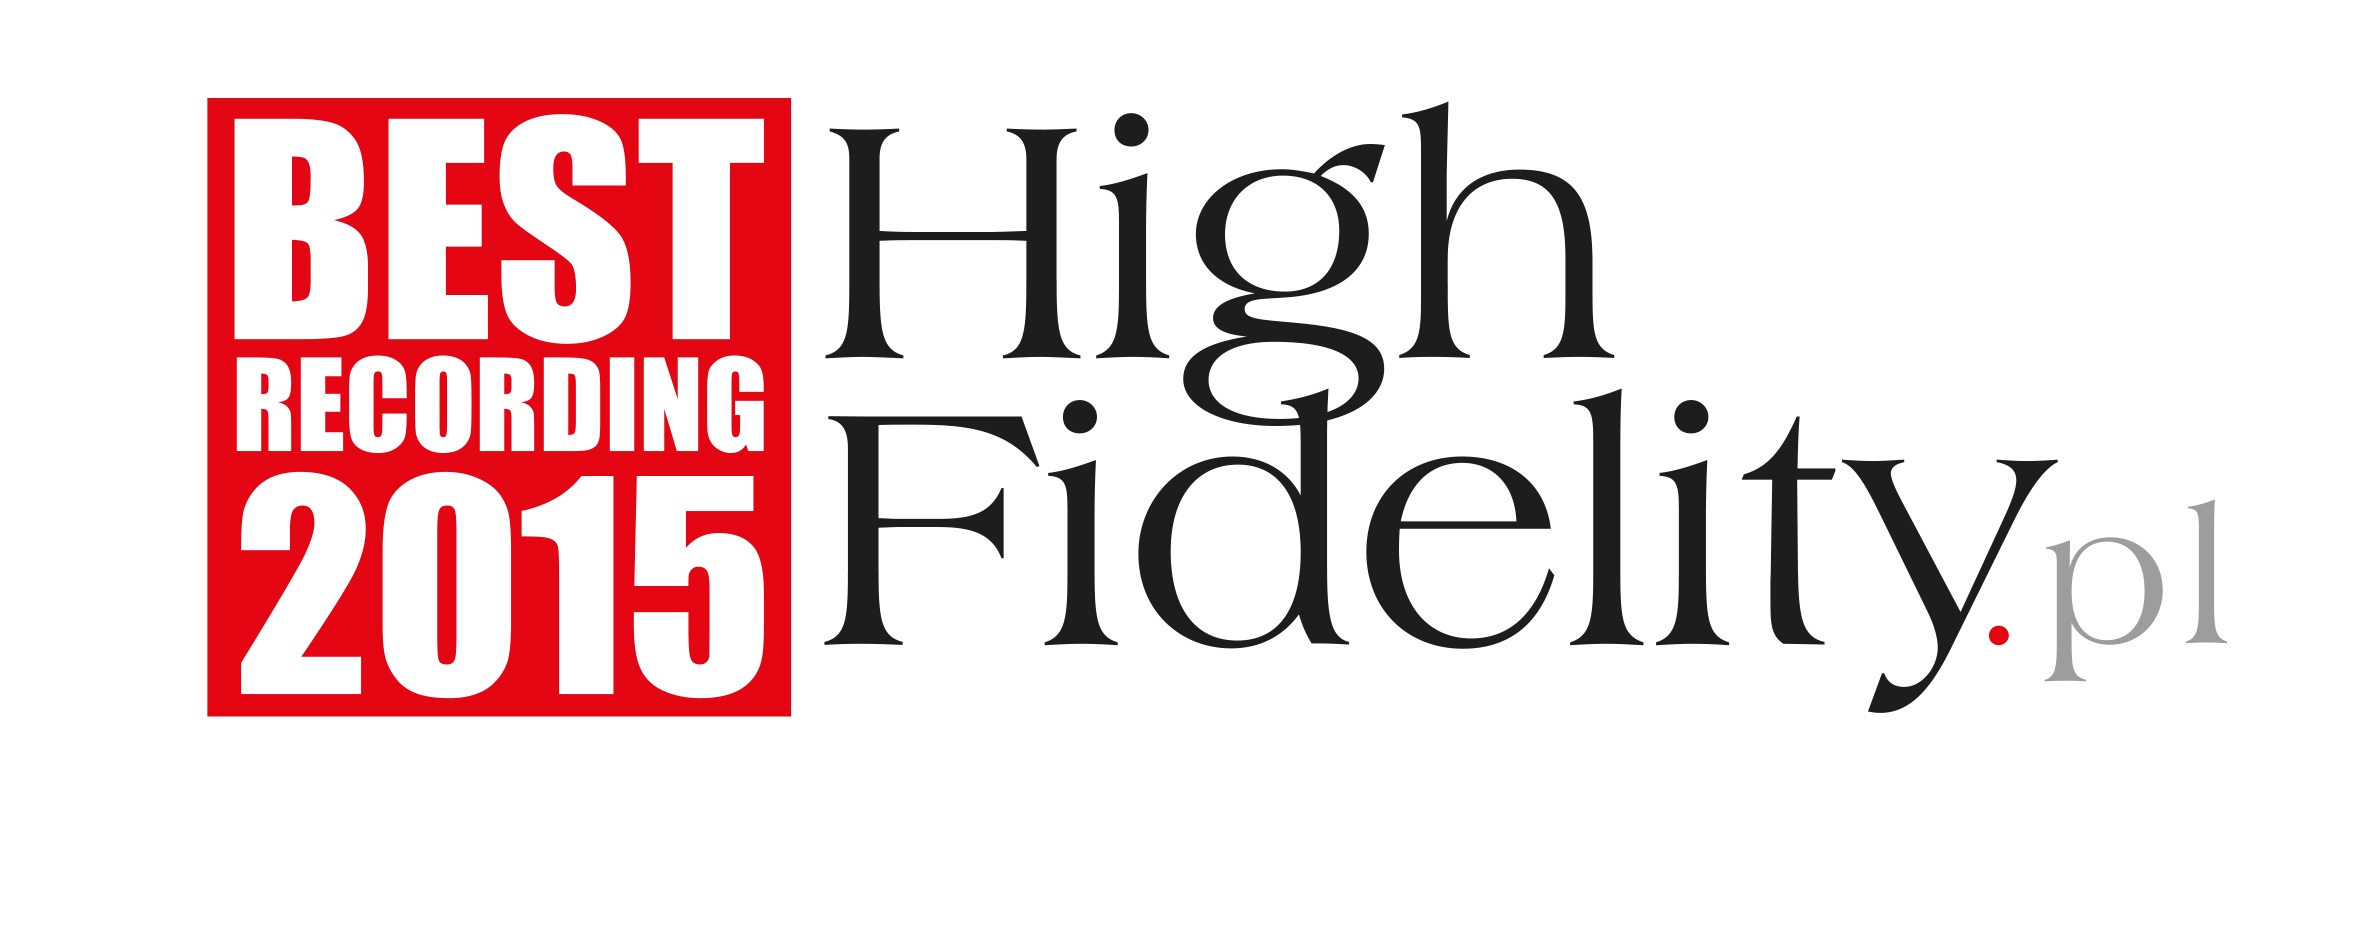 High Fidelity Best <br>Recording 2015